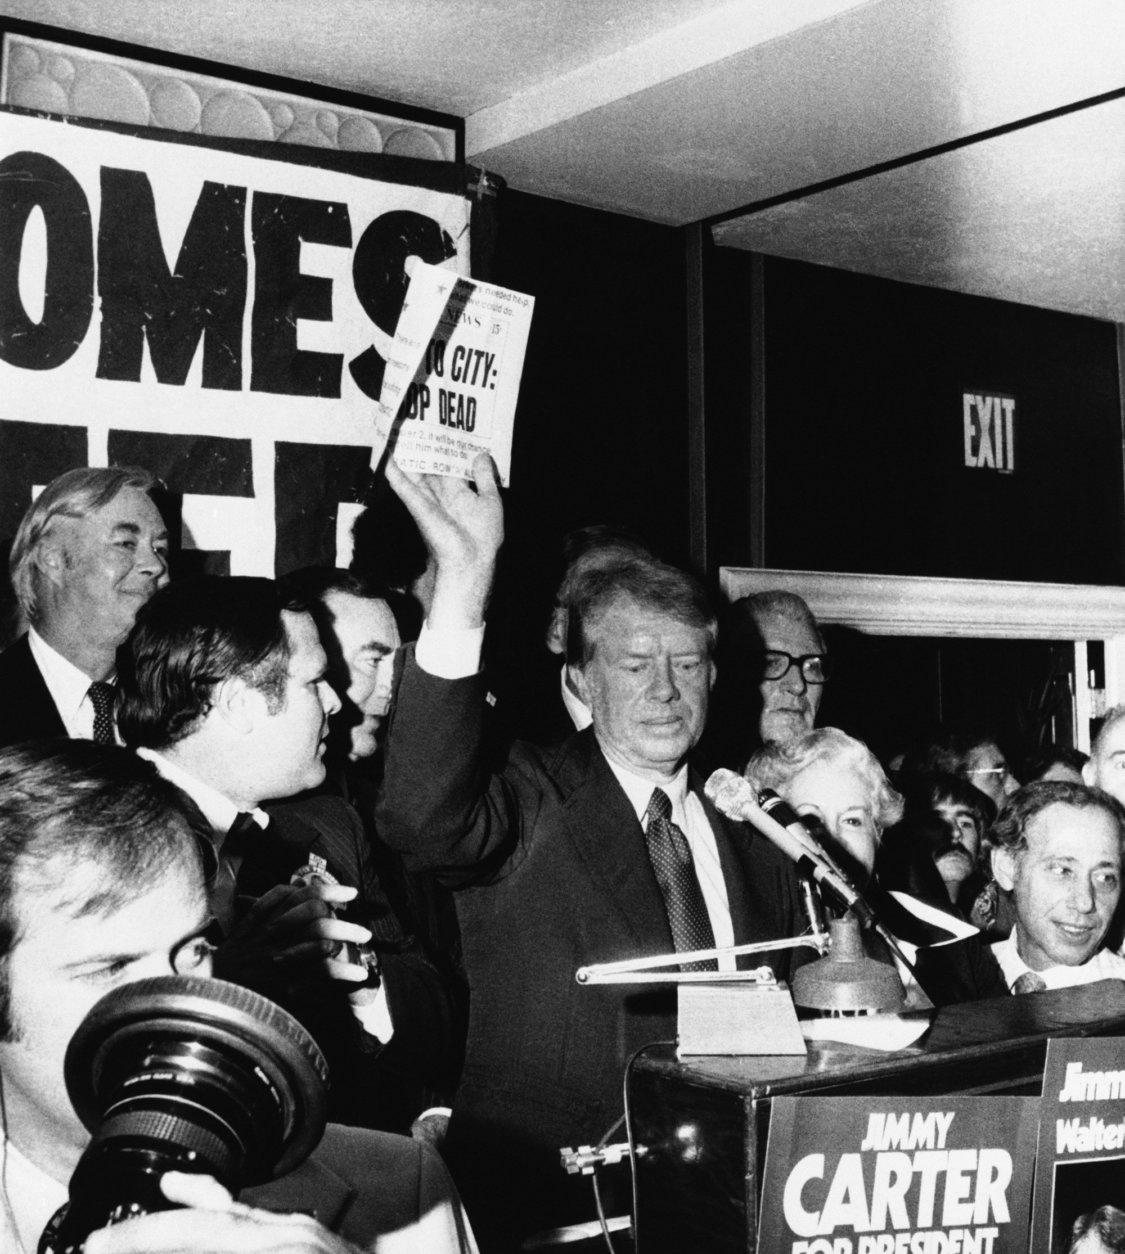 """Democratic presidential nominee Jimmy Carter, center, waves a copy of the New York Daily News carrying a headline """"Ford to City: Drop Dead"""" during a reception at a Queens, N.Y., restaurant, Oct. 15, 1976. Standing behind the former Georgia governor are, from left: state Democratic nominee for U.S Senate, Daniel Patrick Moynihan, Queens borough President Donald Manes and Gov. Hugh Carey, partially hidden. (AP Photo)"""